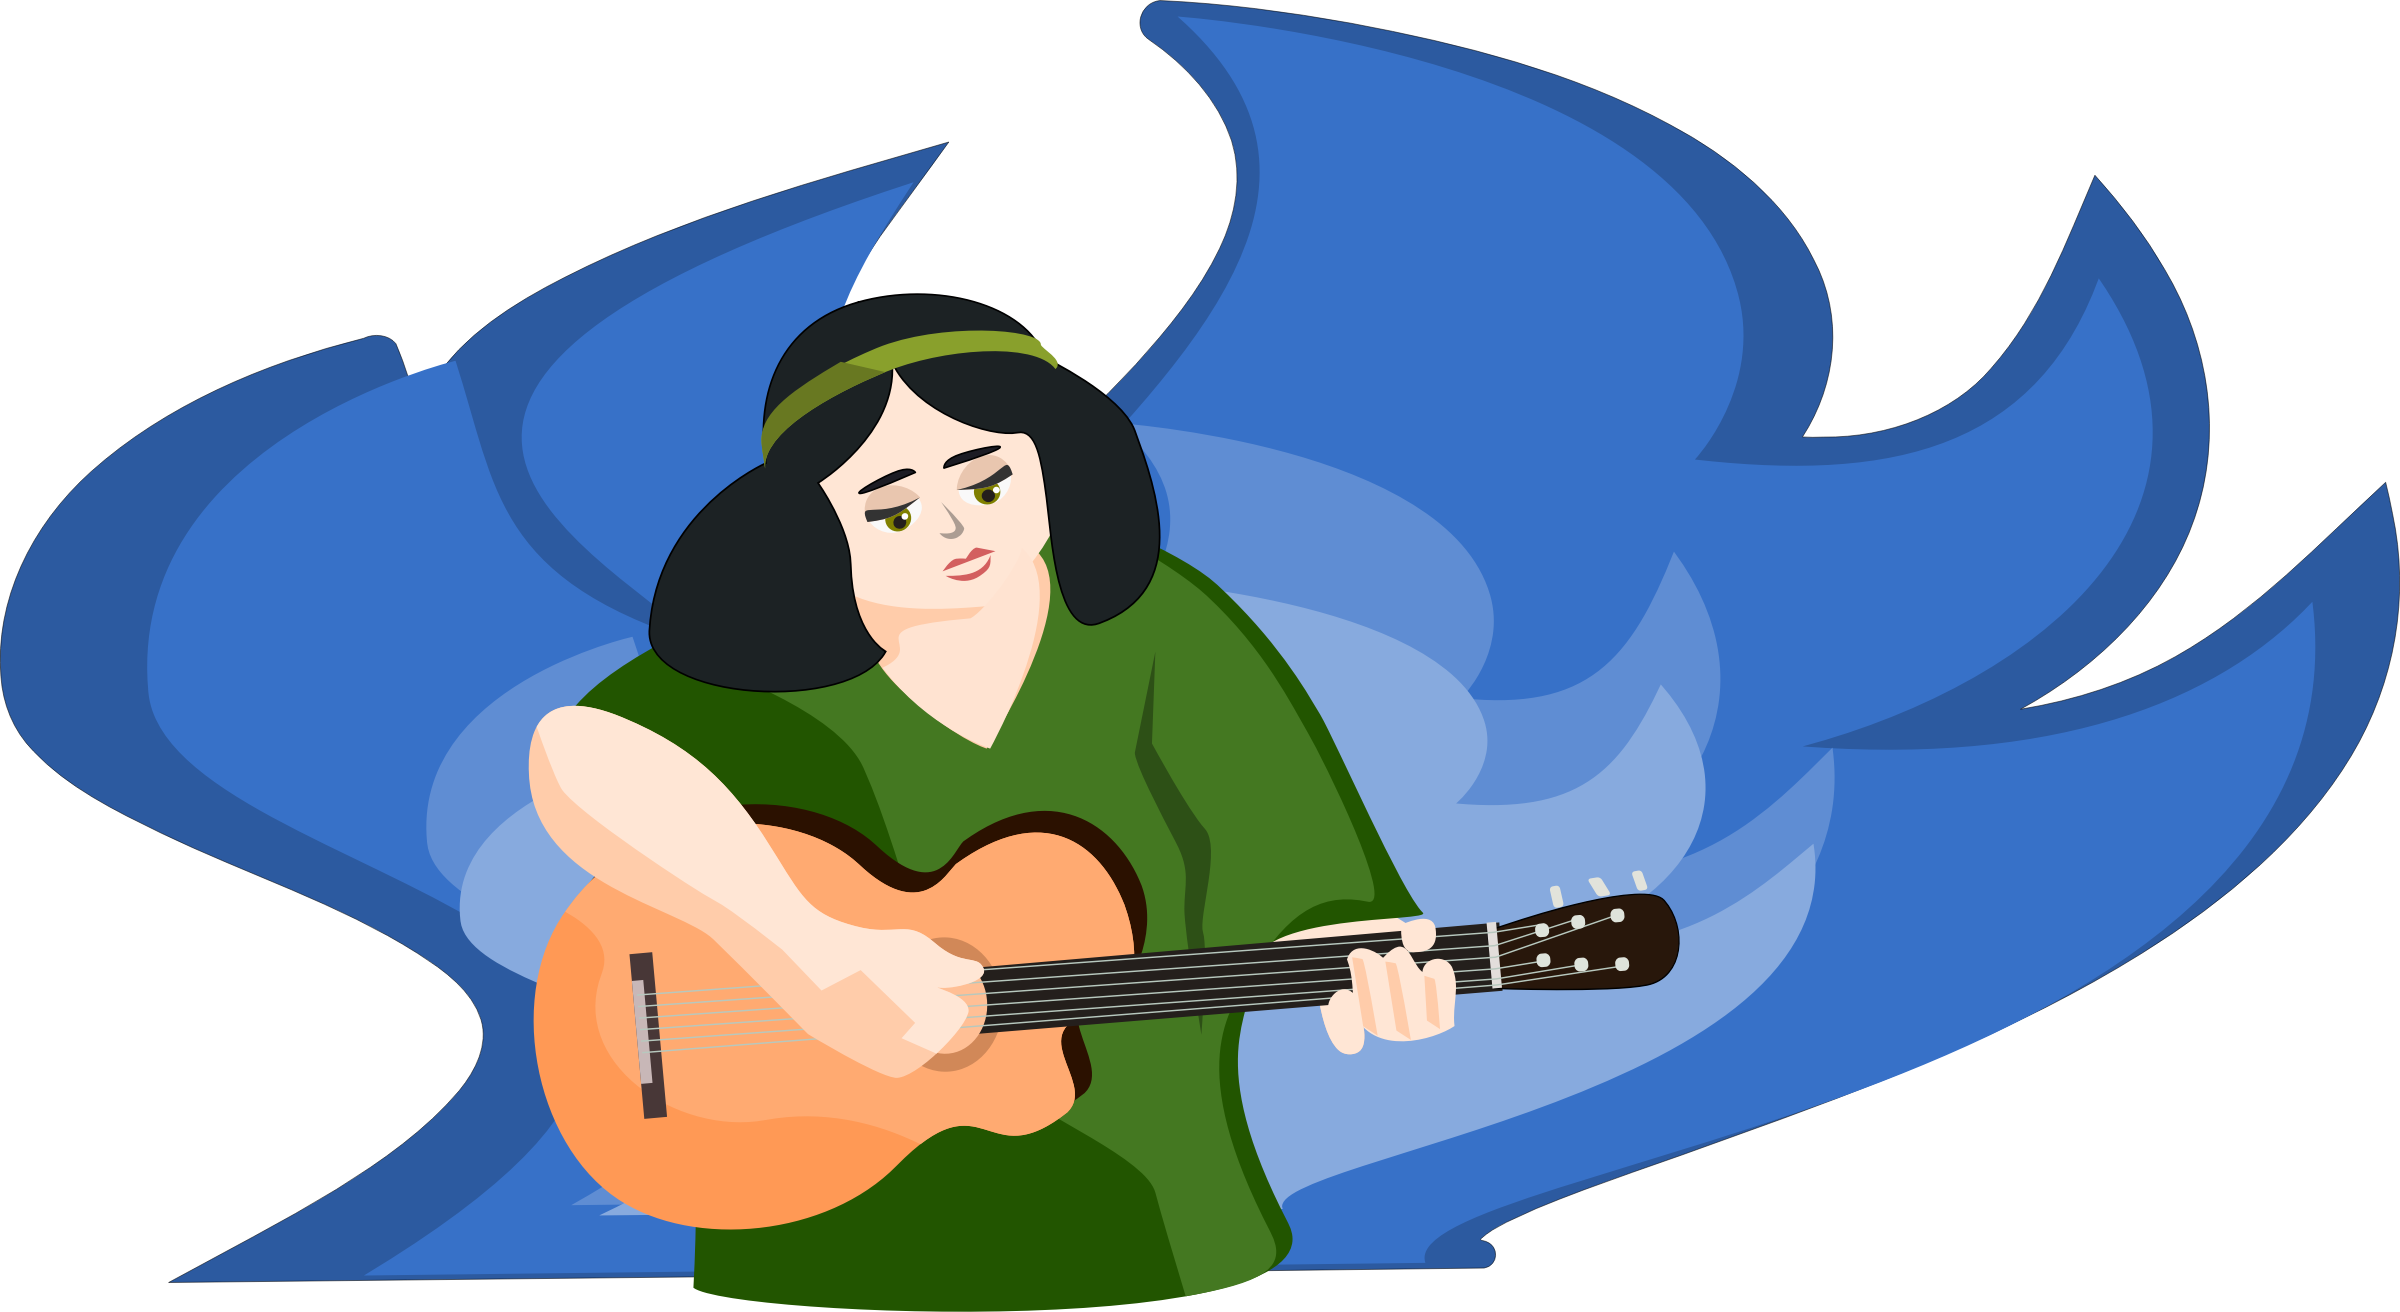 Clipart guitar woman. Bard playing gitar big